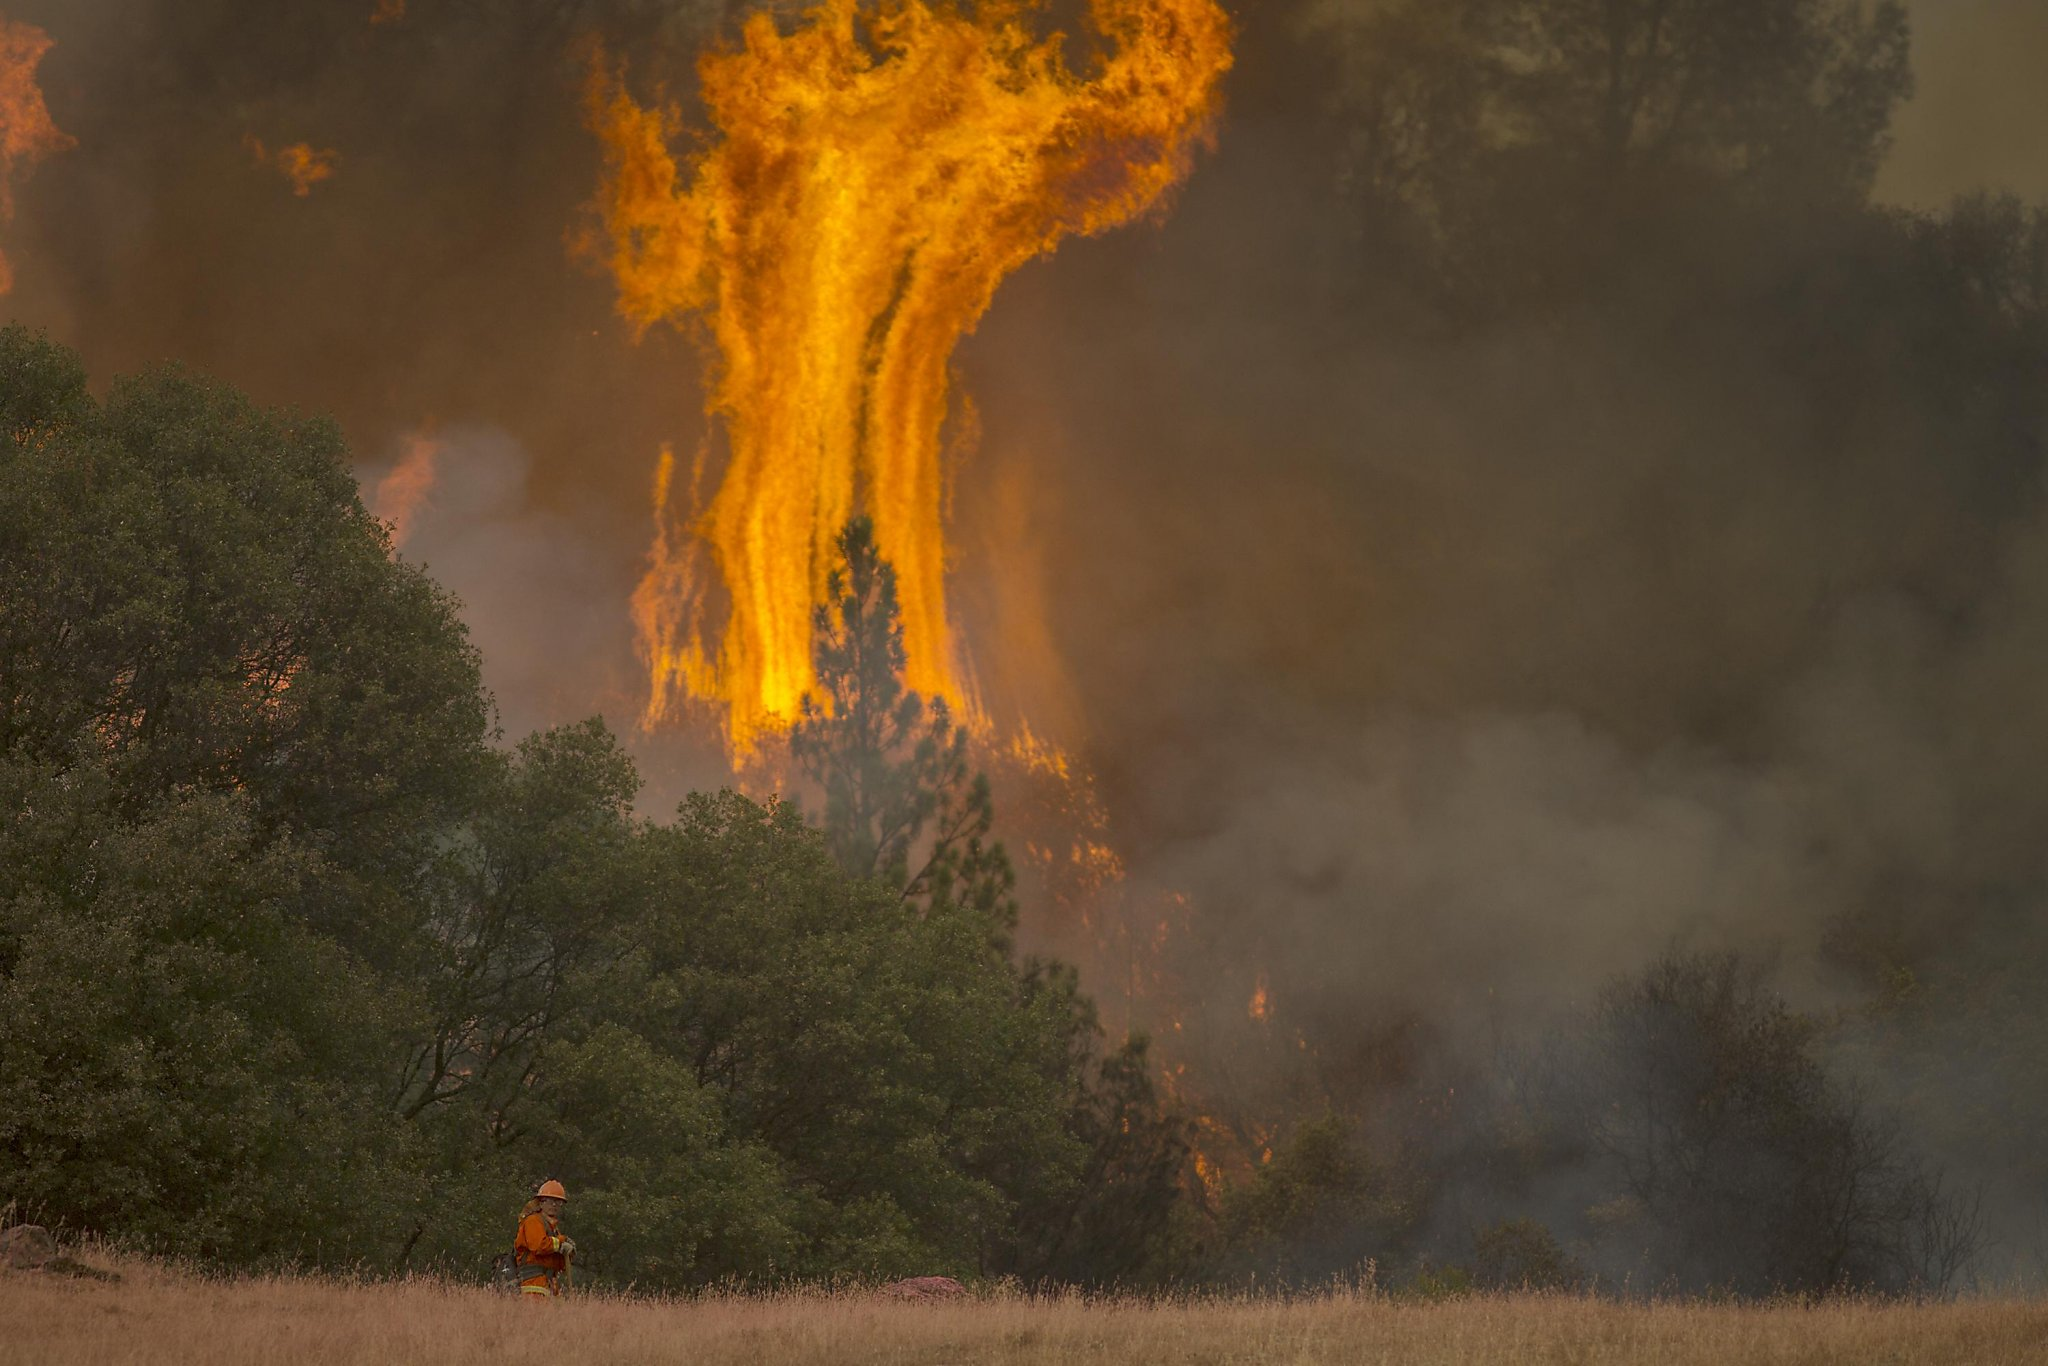 Butte Fire might have been caused by PG&E line - SFGate